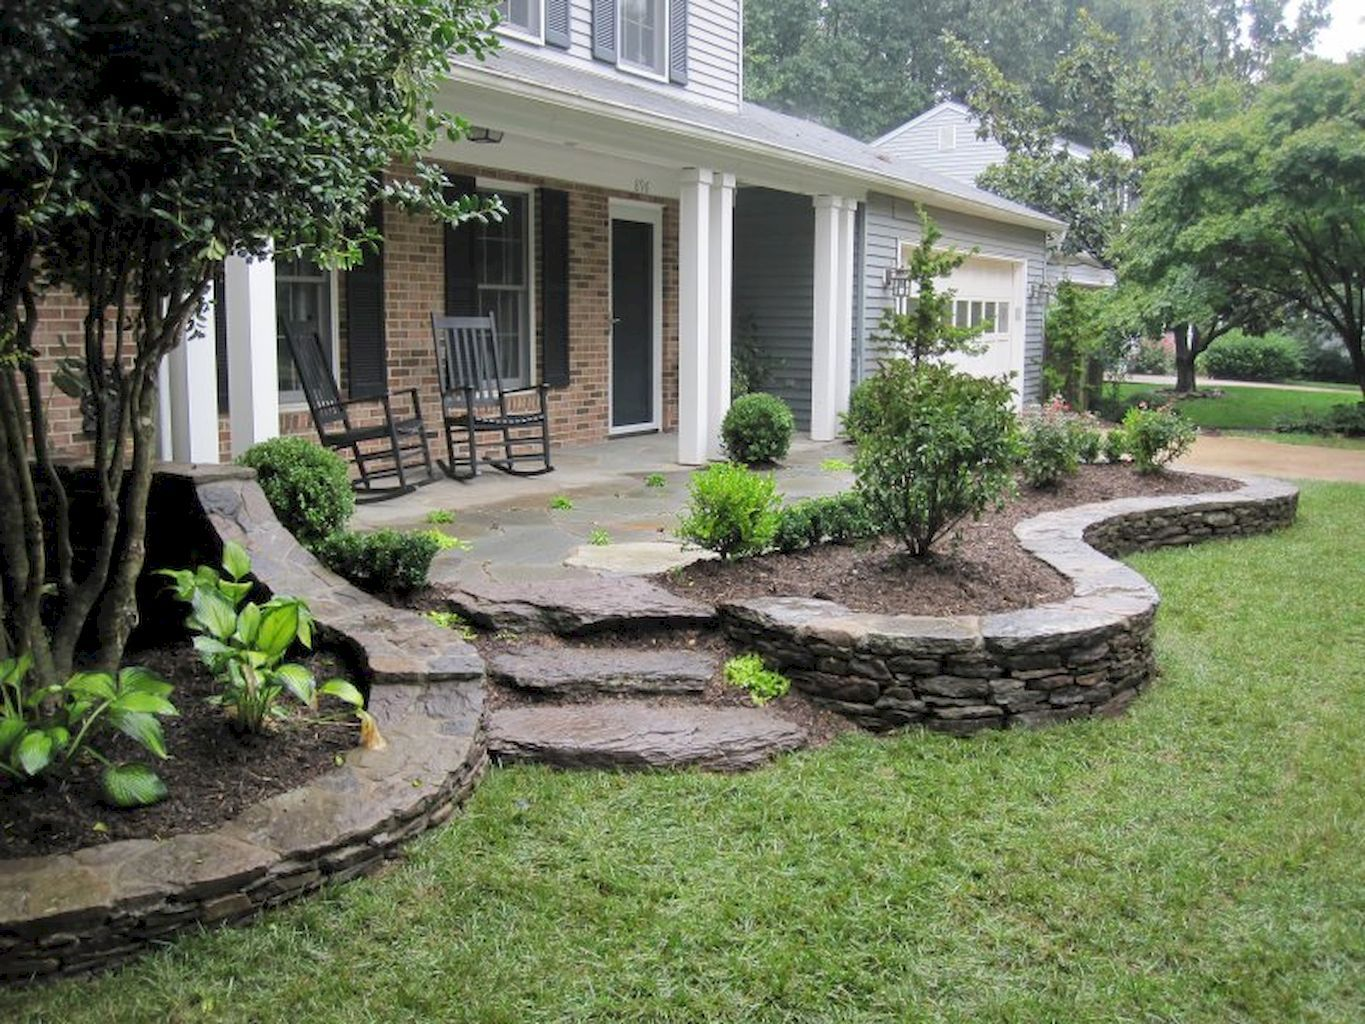 Front Yard Walkway Landscaping Ideas Part - 46: Adorable 85 Affordable Front Yard Walkway Landscaping Ideas  Https://homespecially.com/